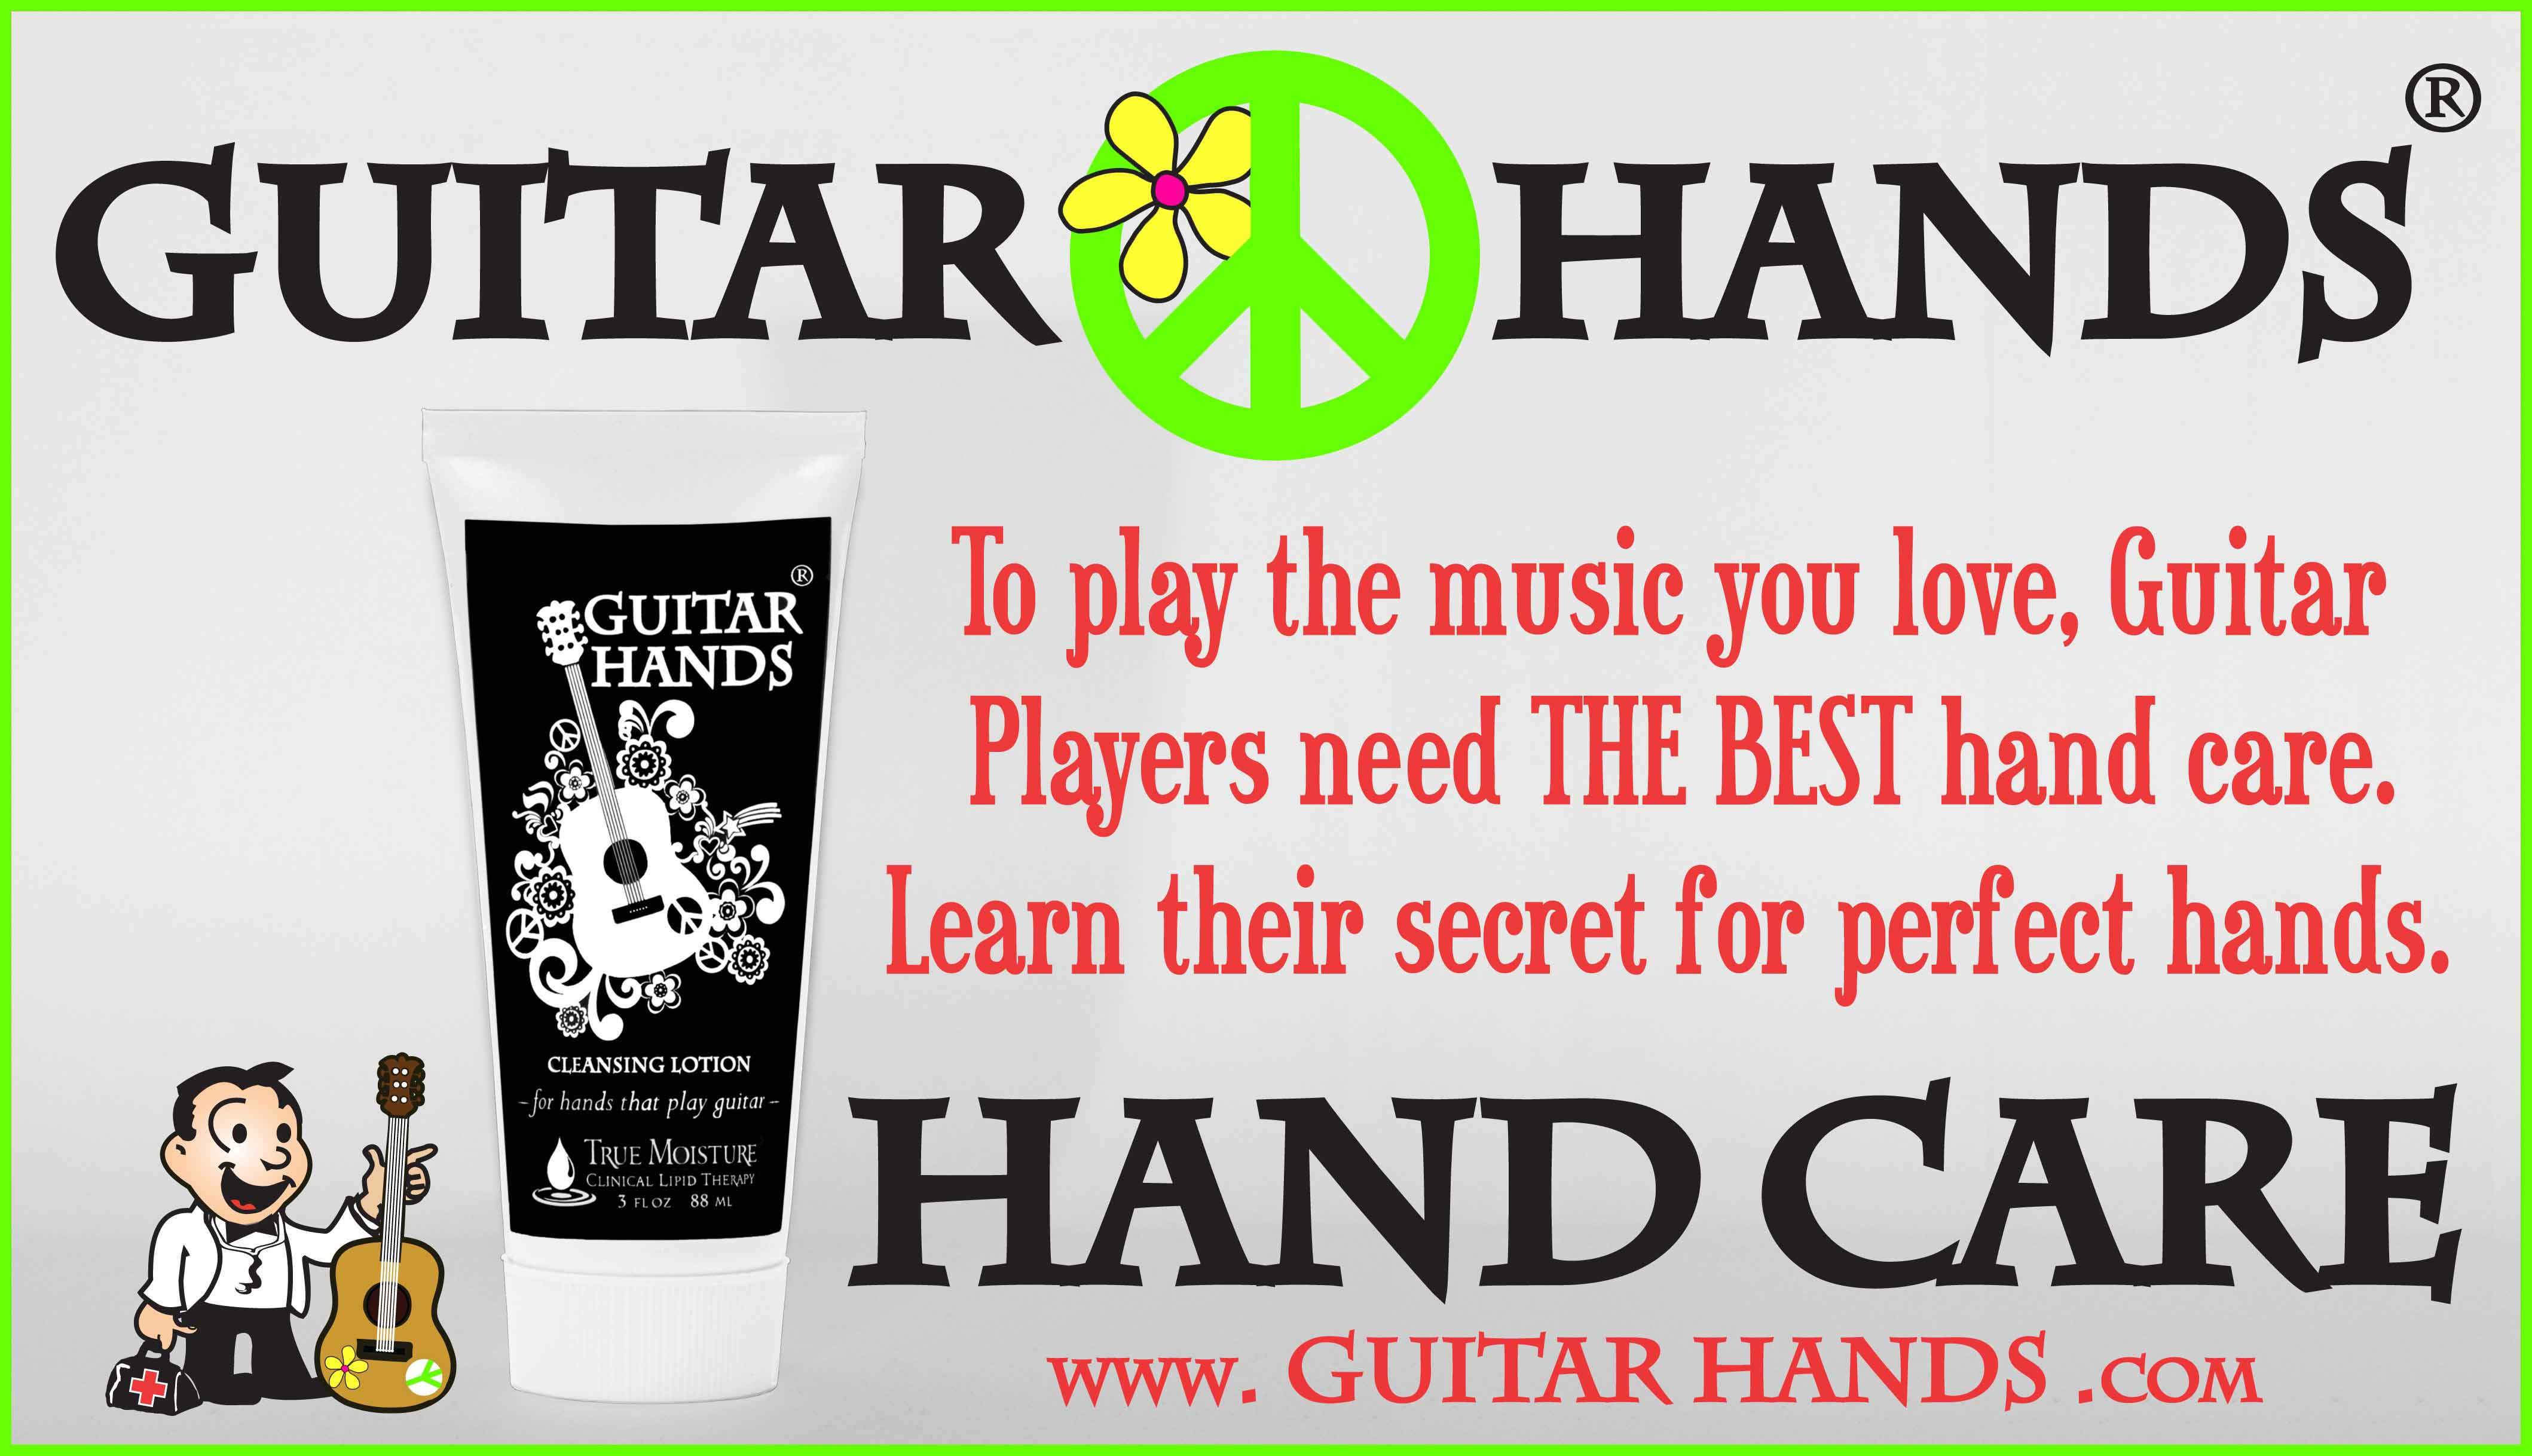 www.GUITARHANDS.com